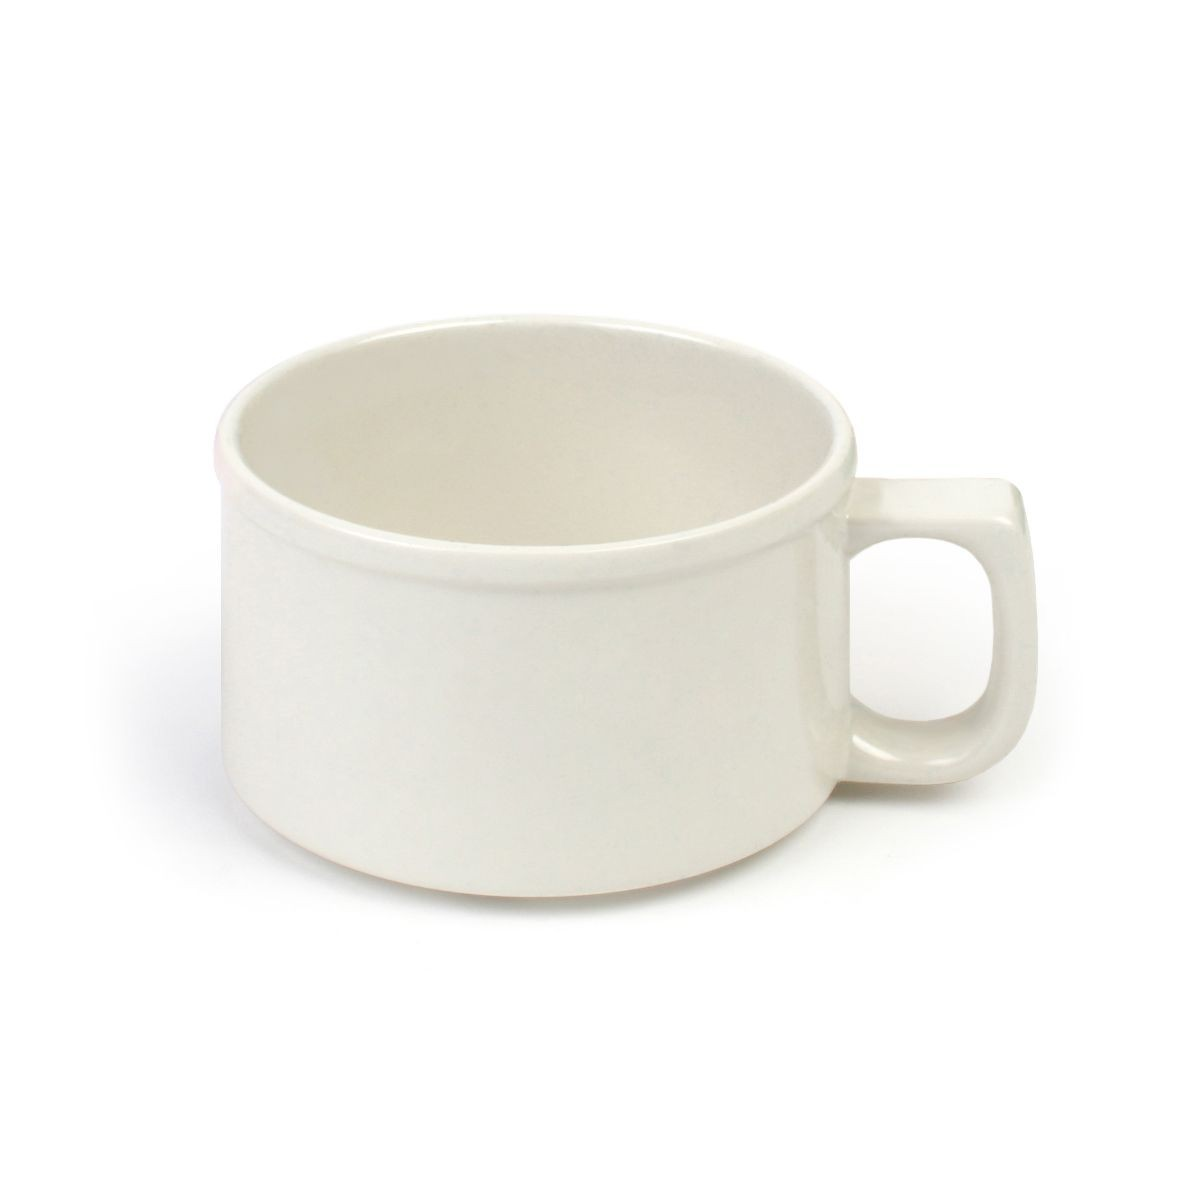 Thunder Group CR9016V 8 oz Soup Mug,  Melamine Ivory - 1 Doz